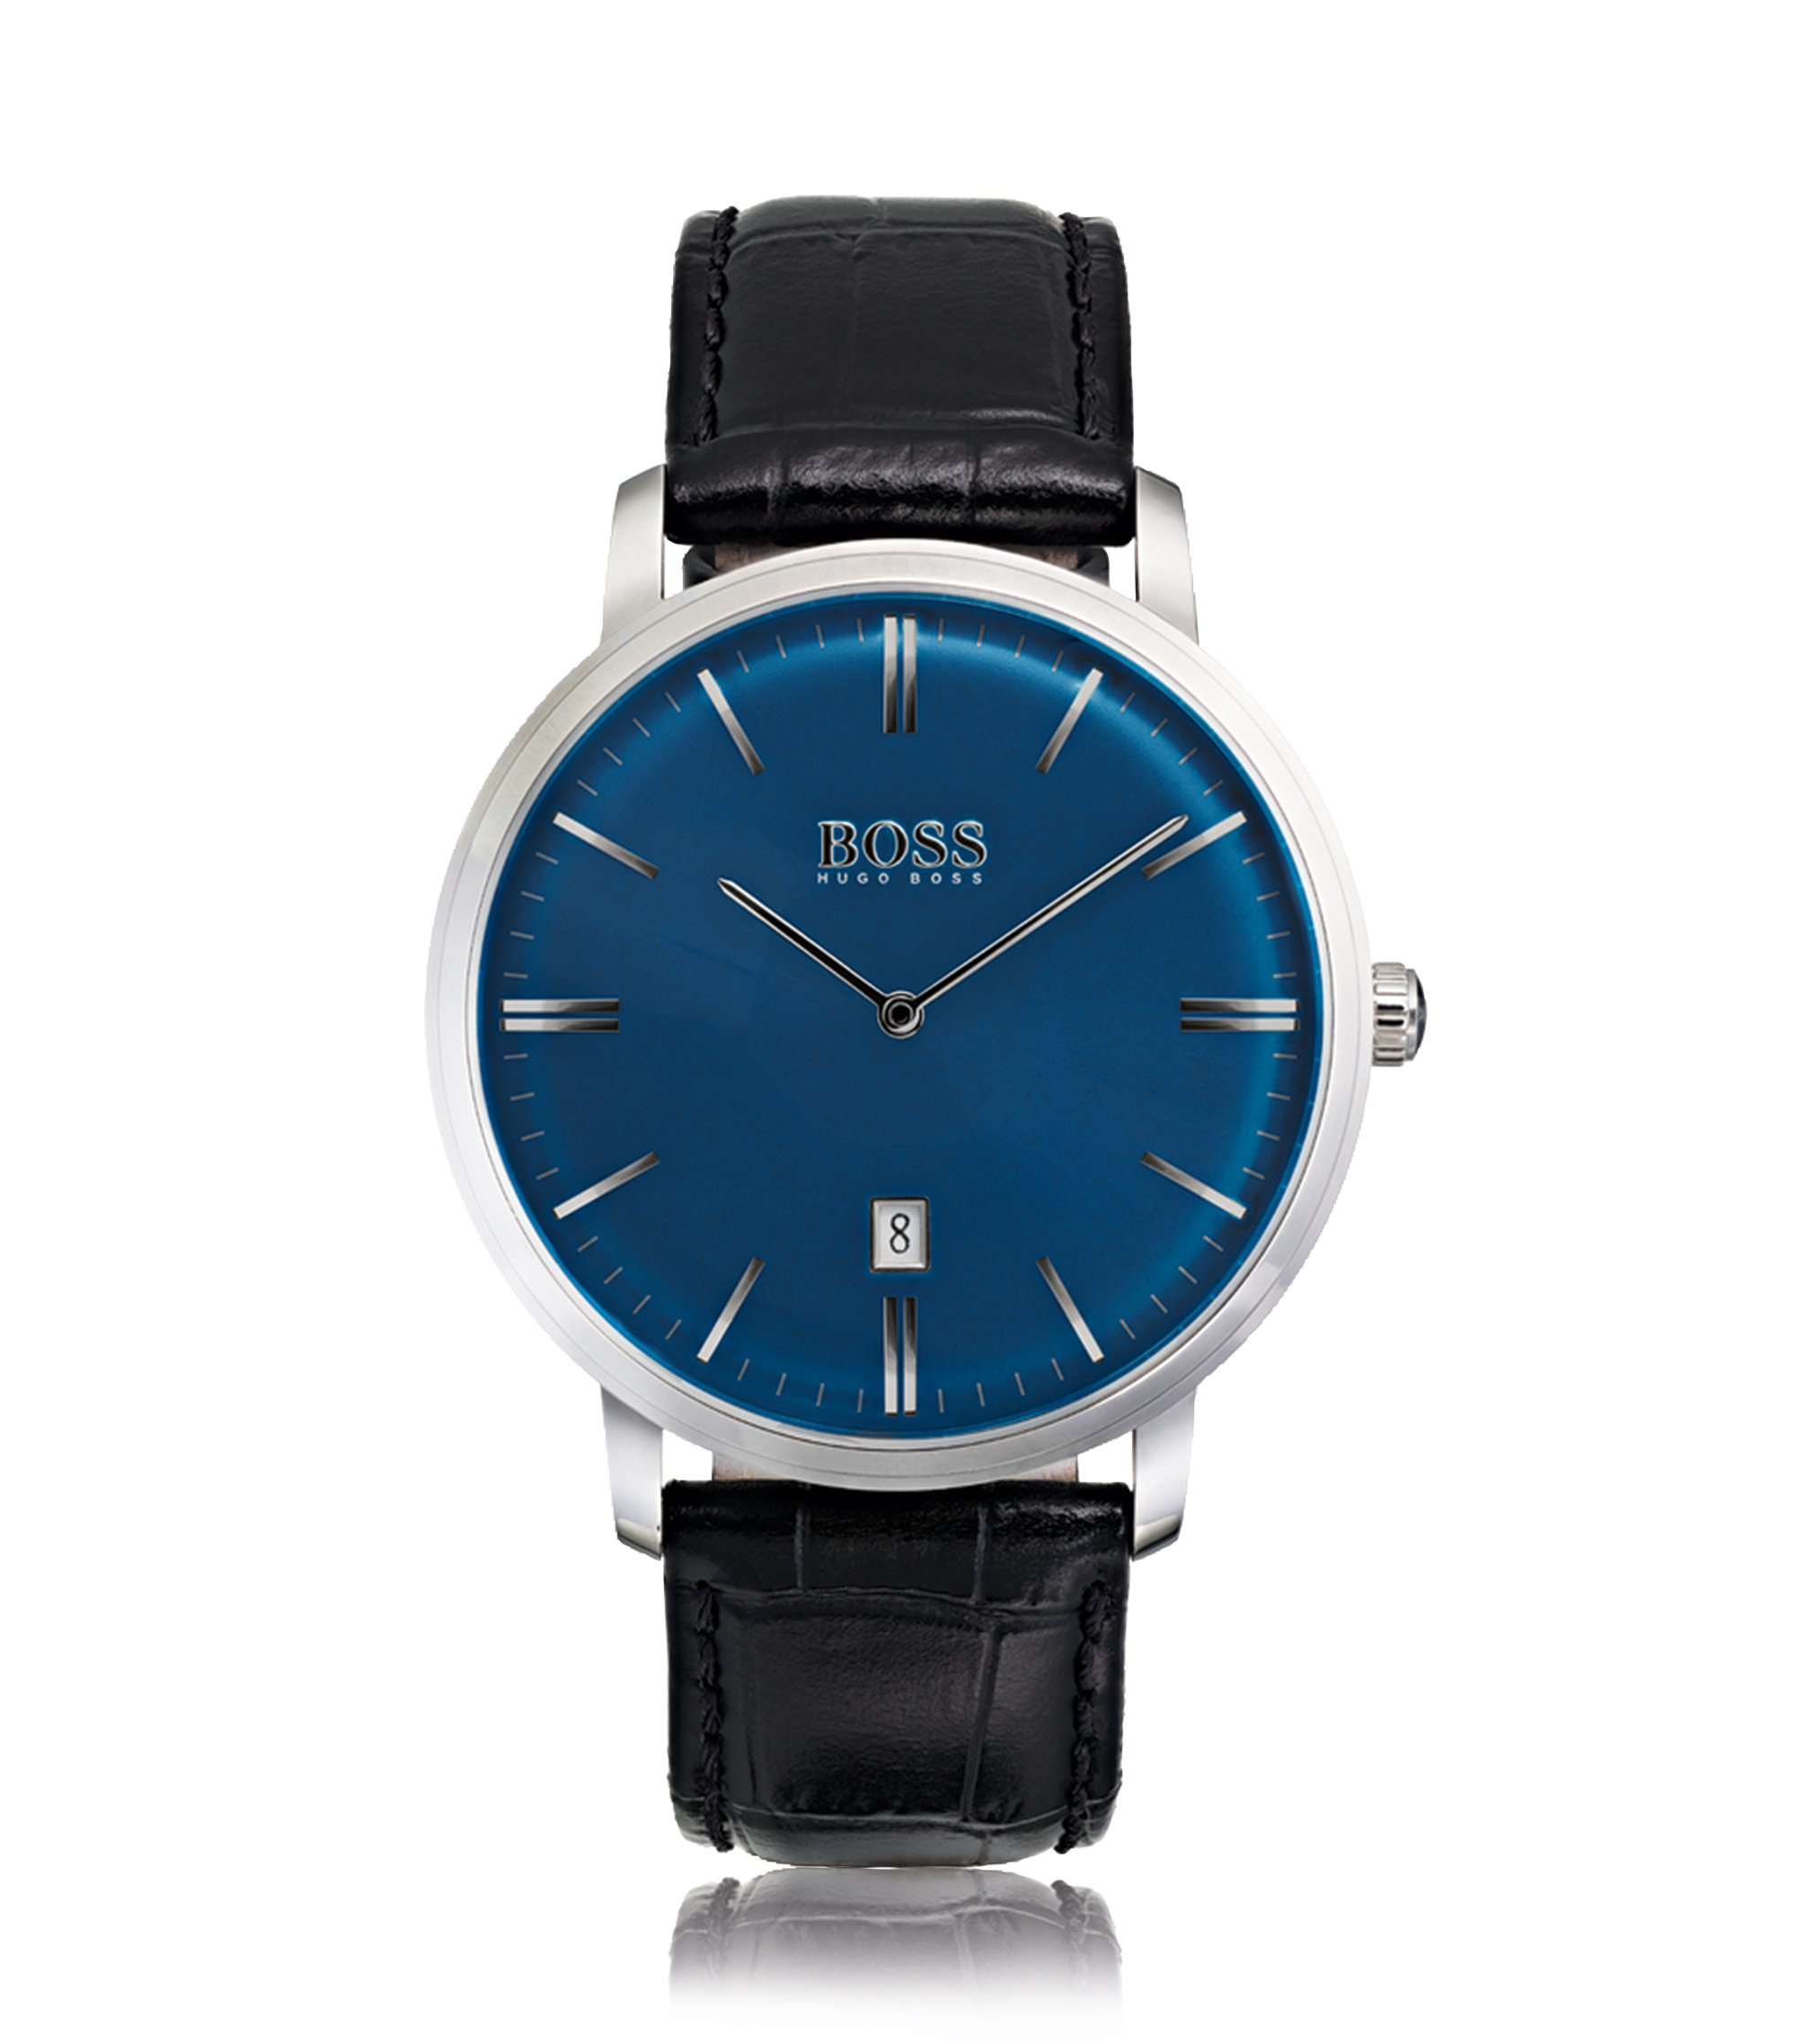 Stainless-steel watch with sunray blue dial and leather strap, Black